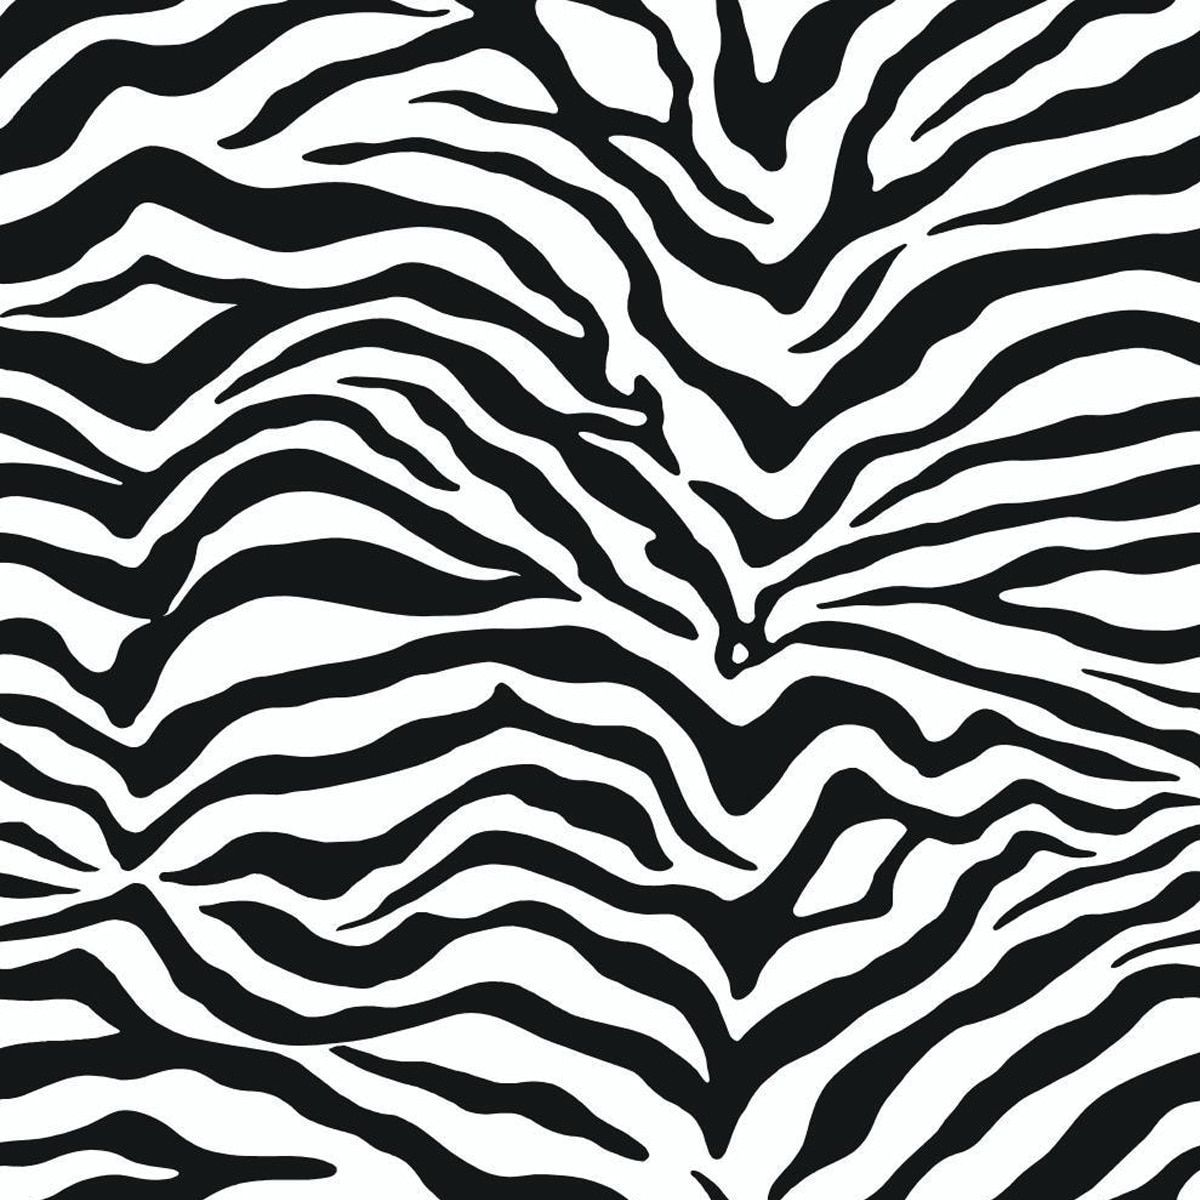 Zebra patterned wallpaper - Bring Out The Wild Side Of Your Decor With This Zebra Patterned Wallpaper Created